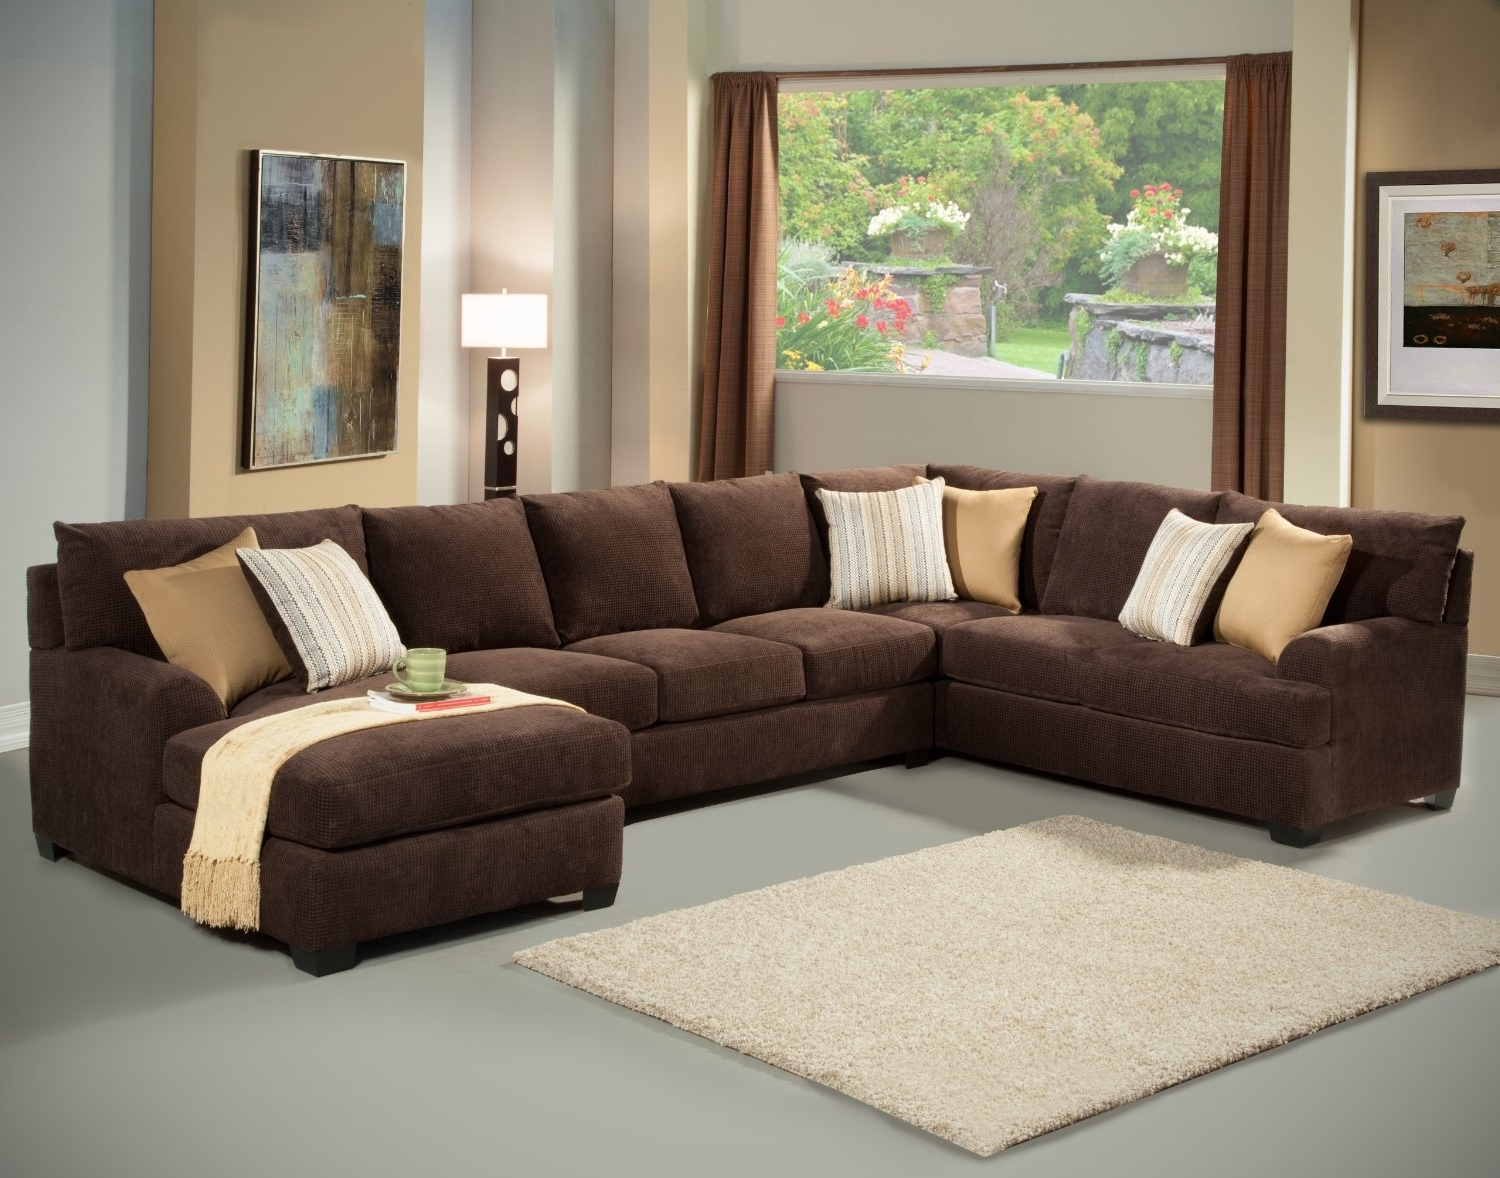 Large Sectional Sofas Cheap Sectionals Near Me Modern Reclining In Well Known Oversized Sectionals With Chaise (View 11 of 15)